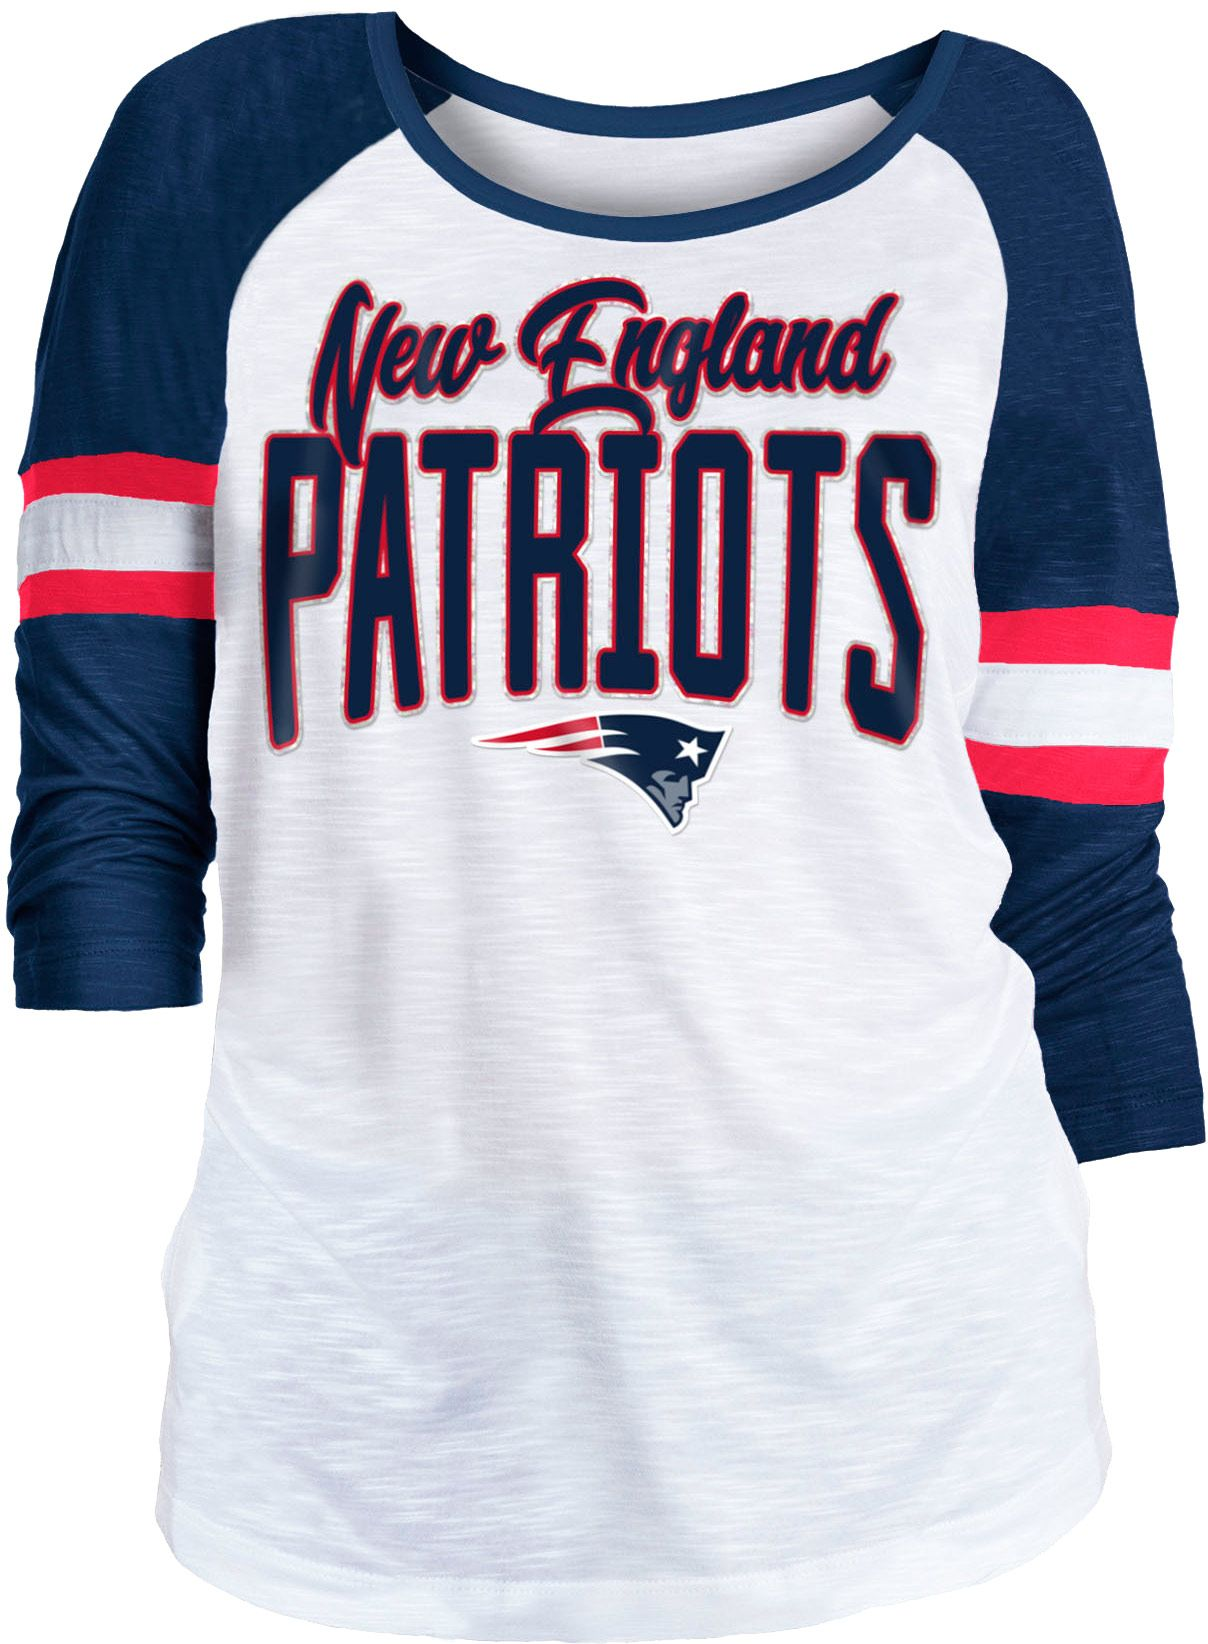 patriots t shirt women's